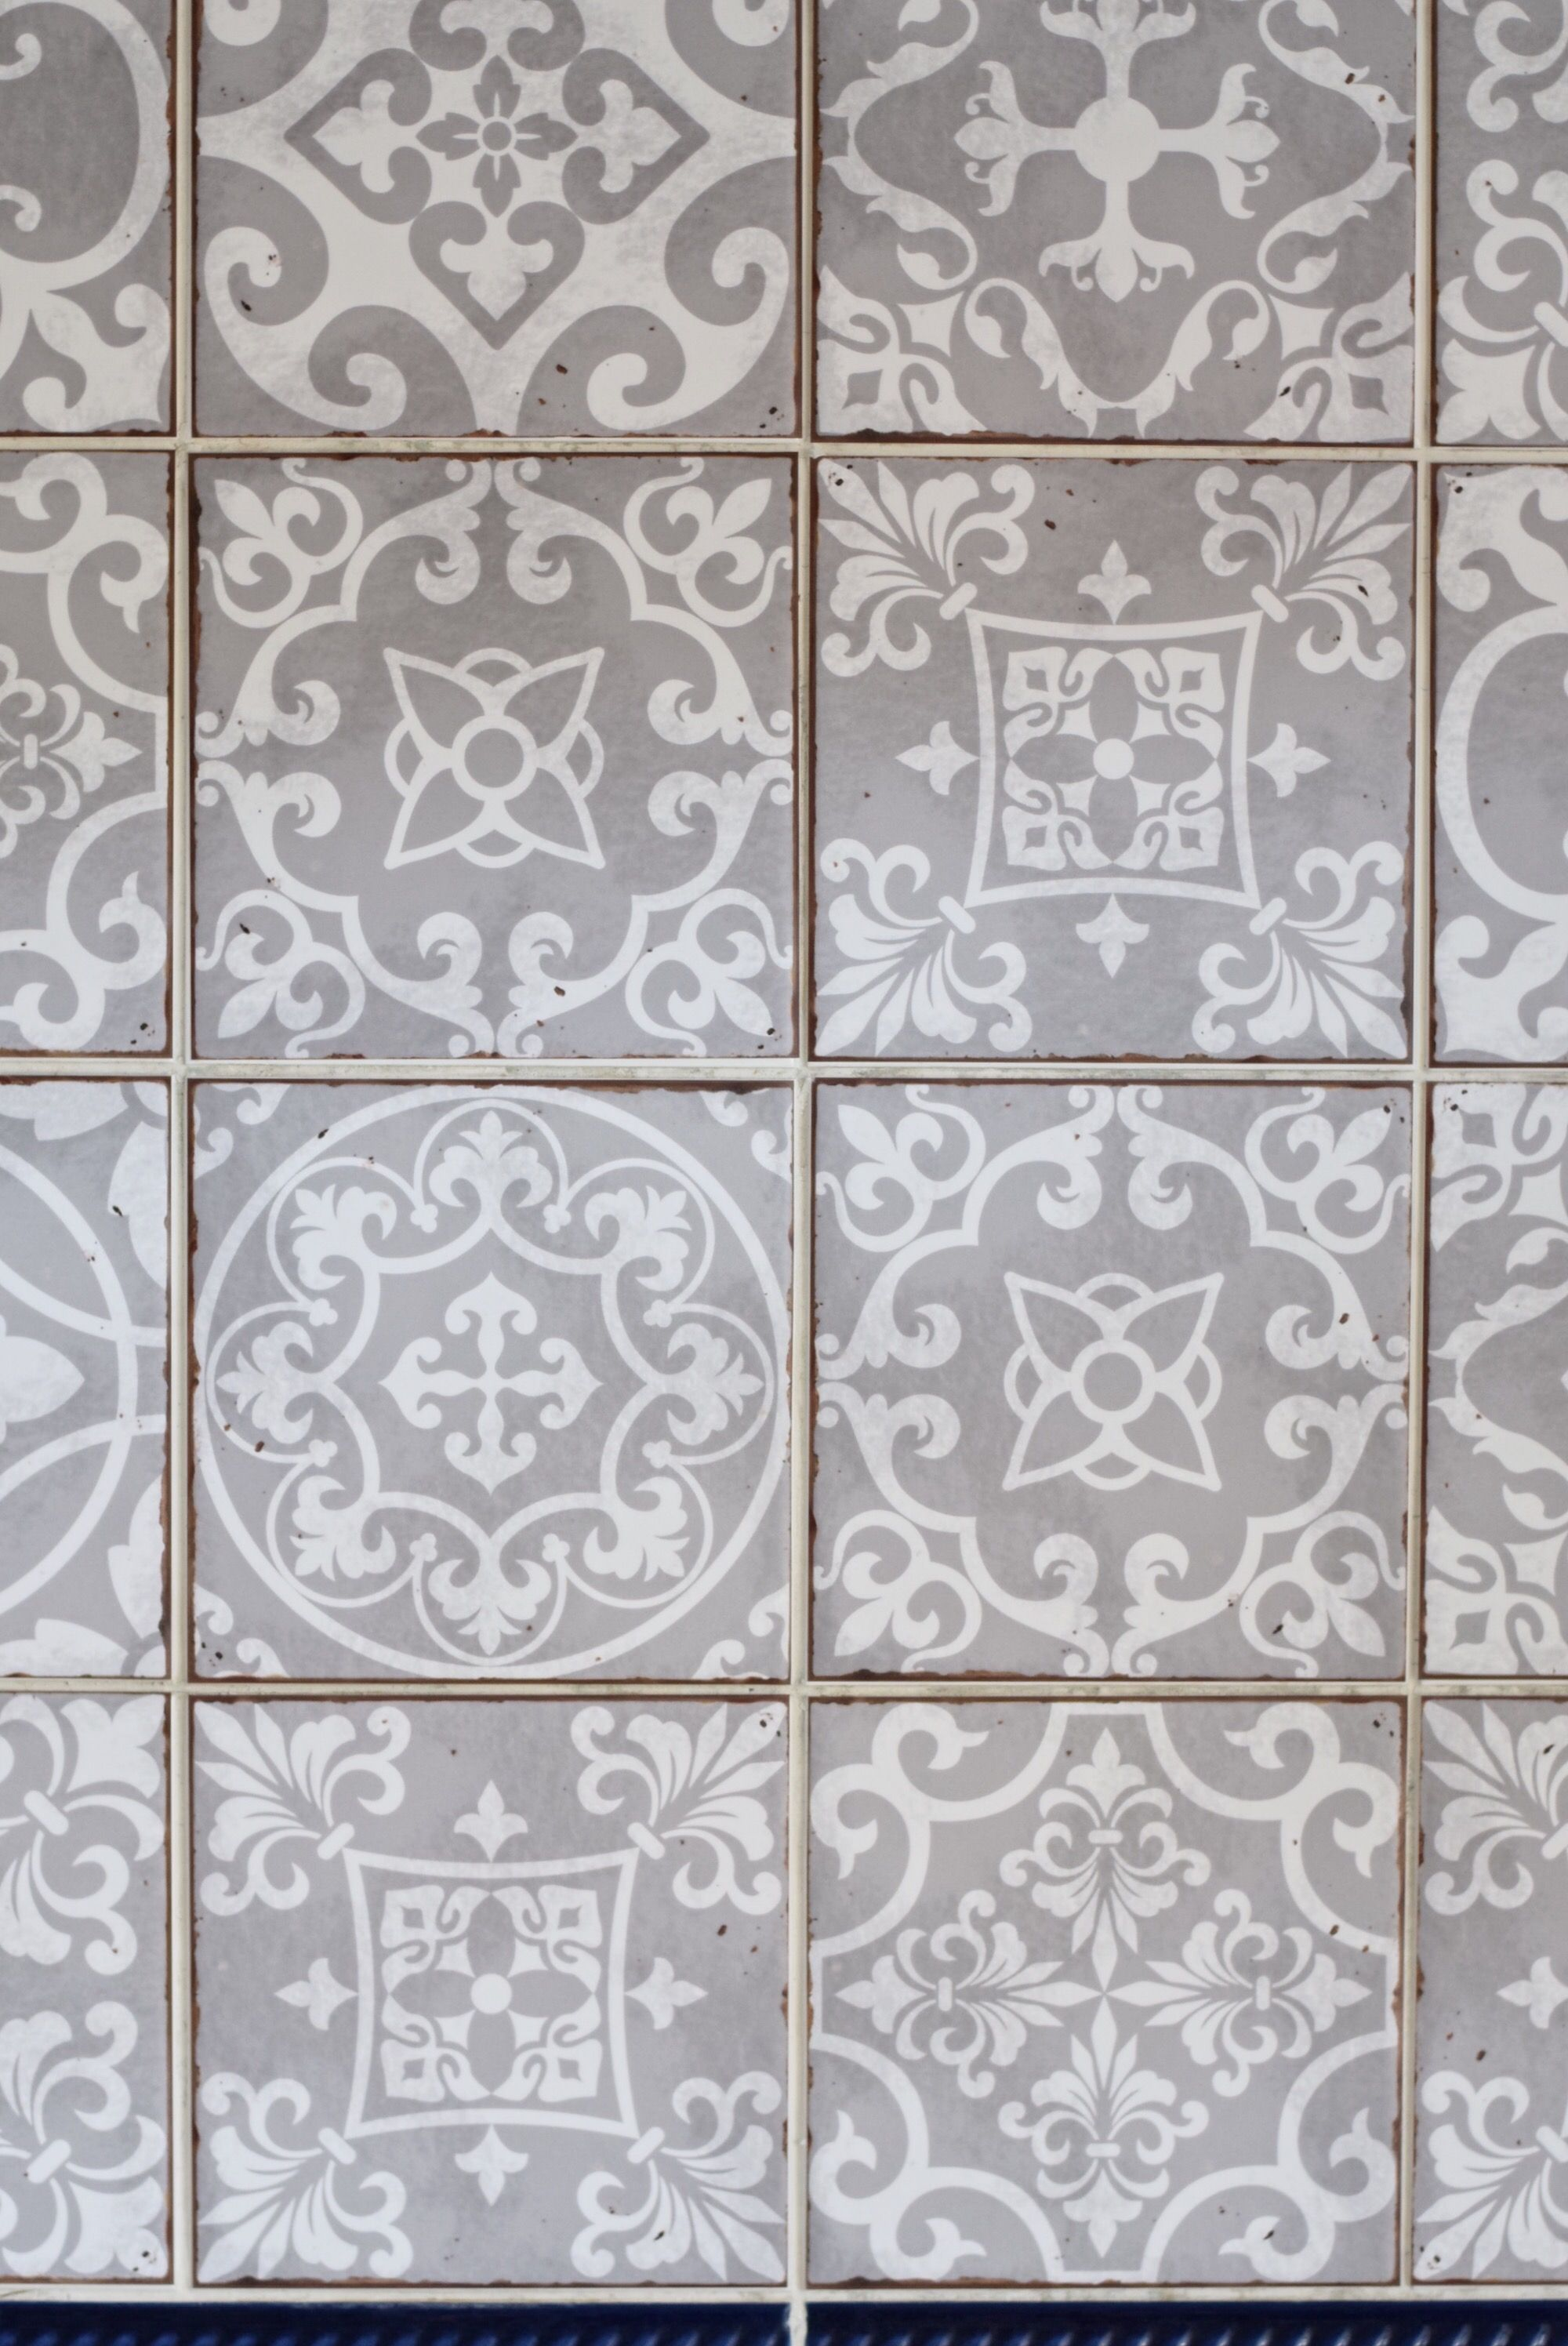 Removable Tile stickers to transform a kitchen or bathroom ...